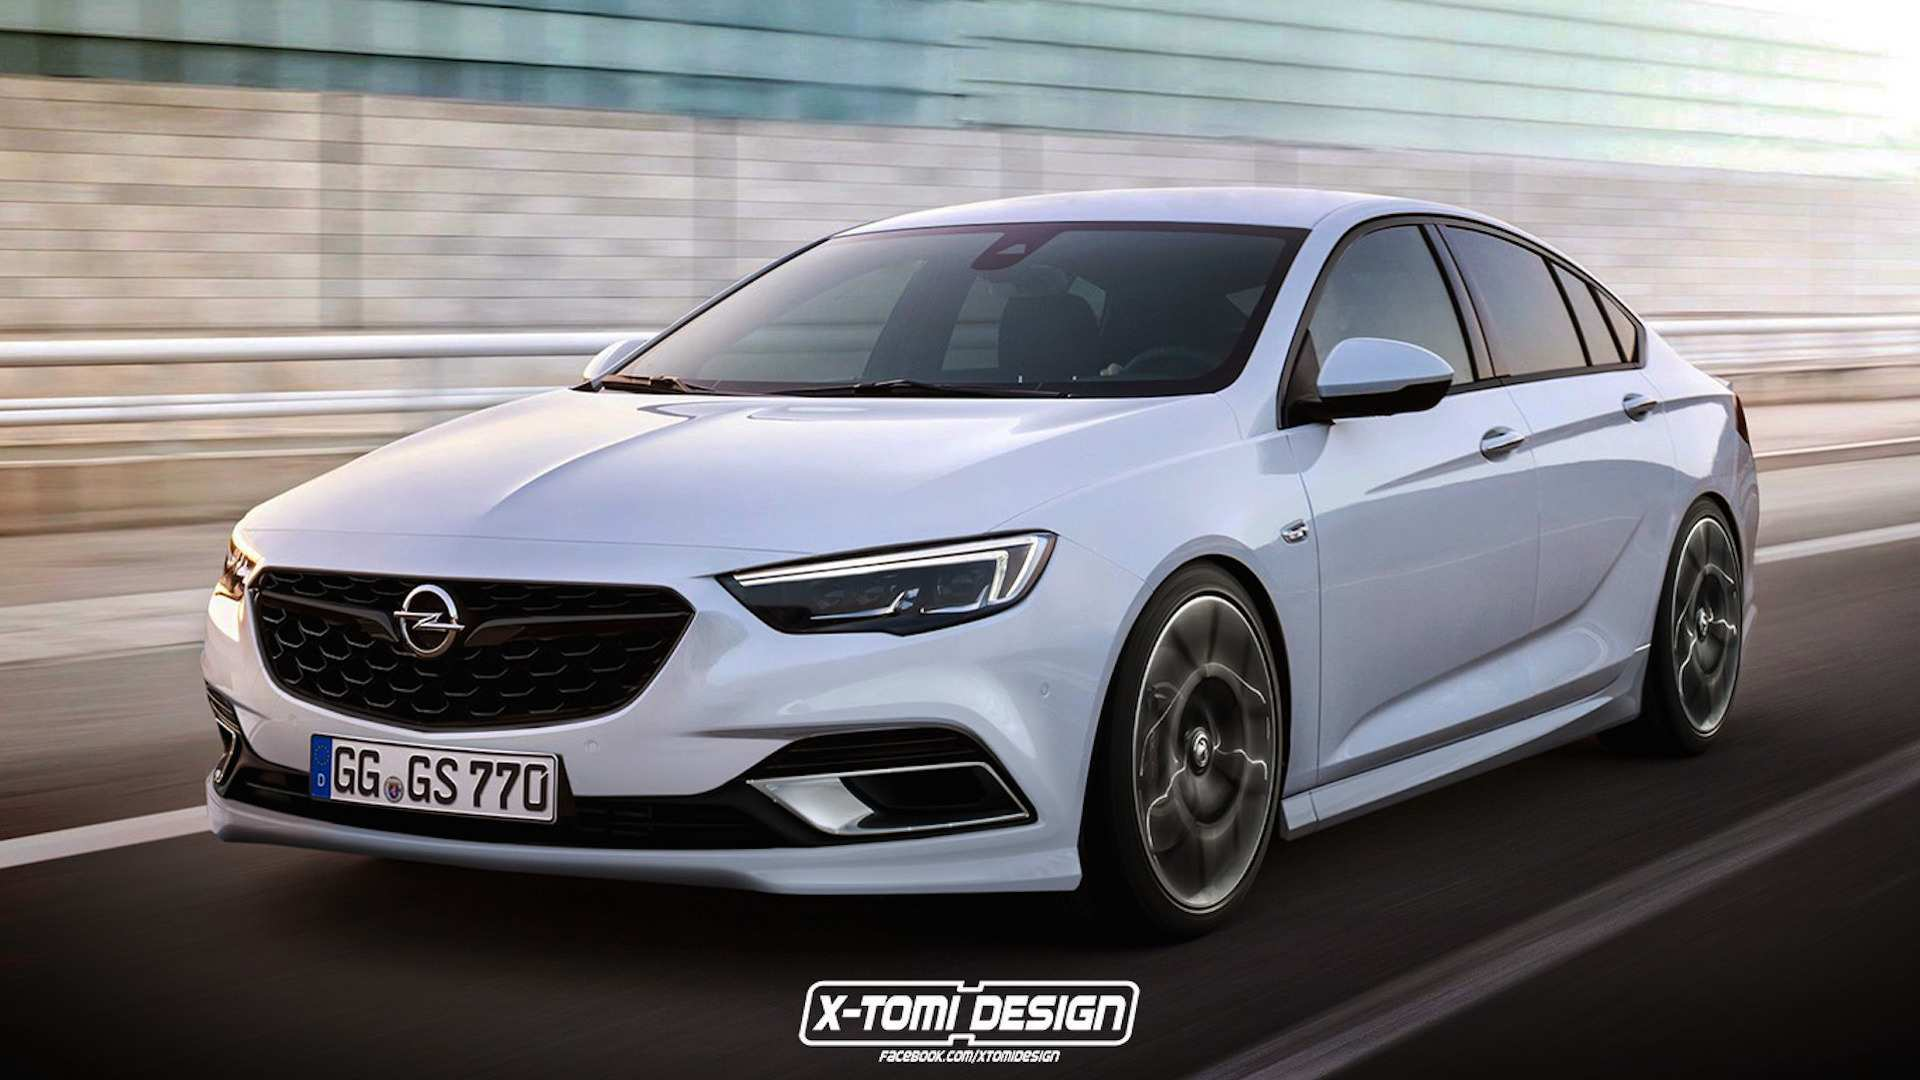 55 The Opel Insignia Opc 2020 Concept for Opel Insignia Opc 2020